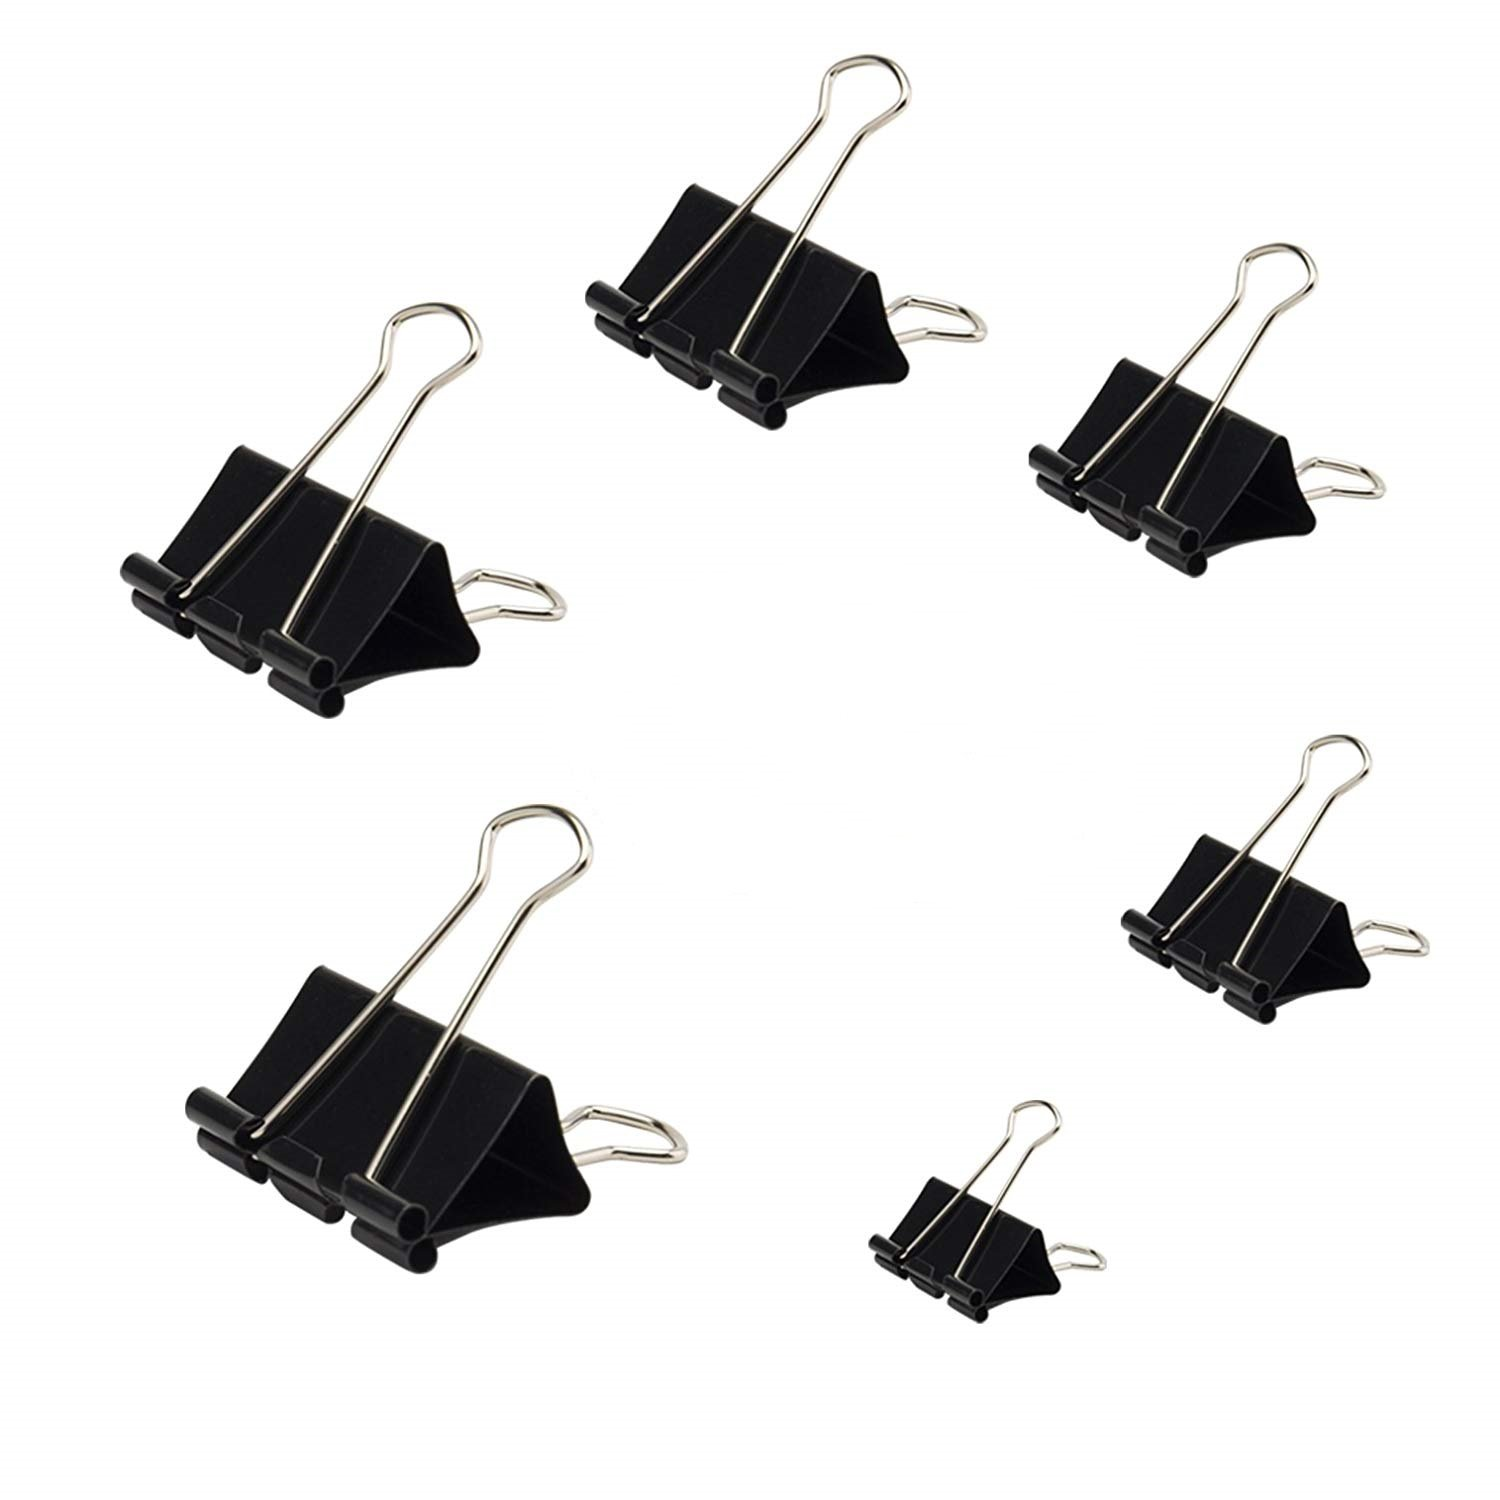 Binder Clip Black Paper Clip Various 6 Size Paper Clips Office School and Household Items 120 Packs